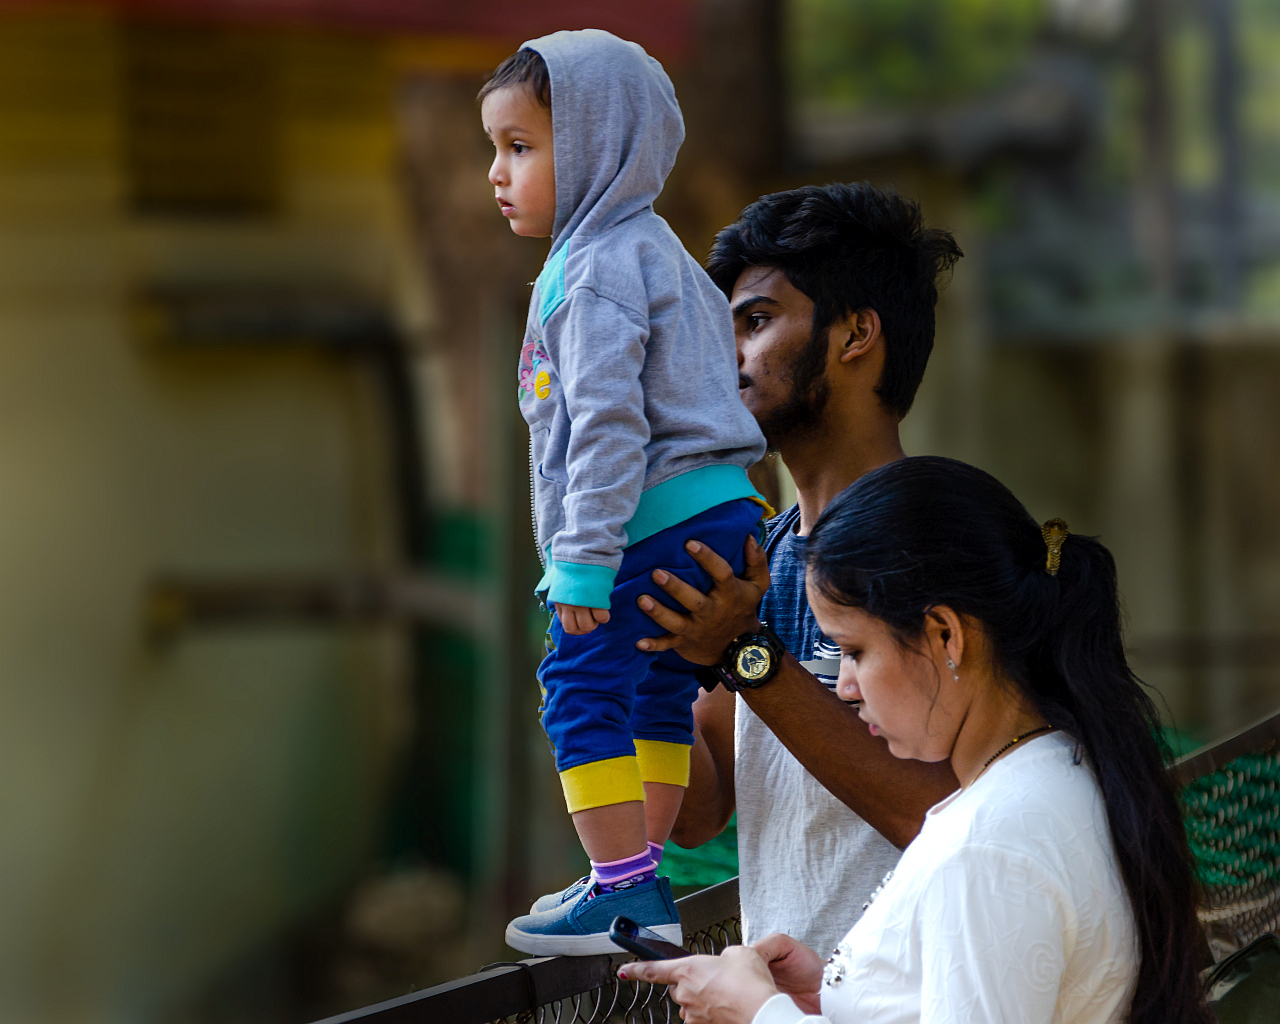 Snapped at Byculla zoo recently, this family is looking over an enclosure of hippopotamus at the zoo. The photographer senses an unguarded moment lingering anytime bringing on unlimited risk to the little one.